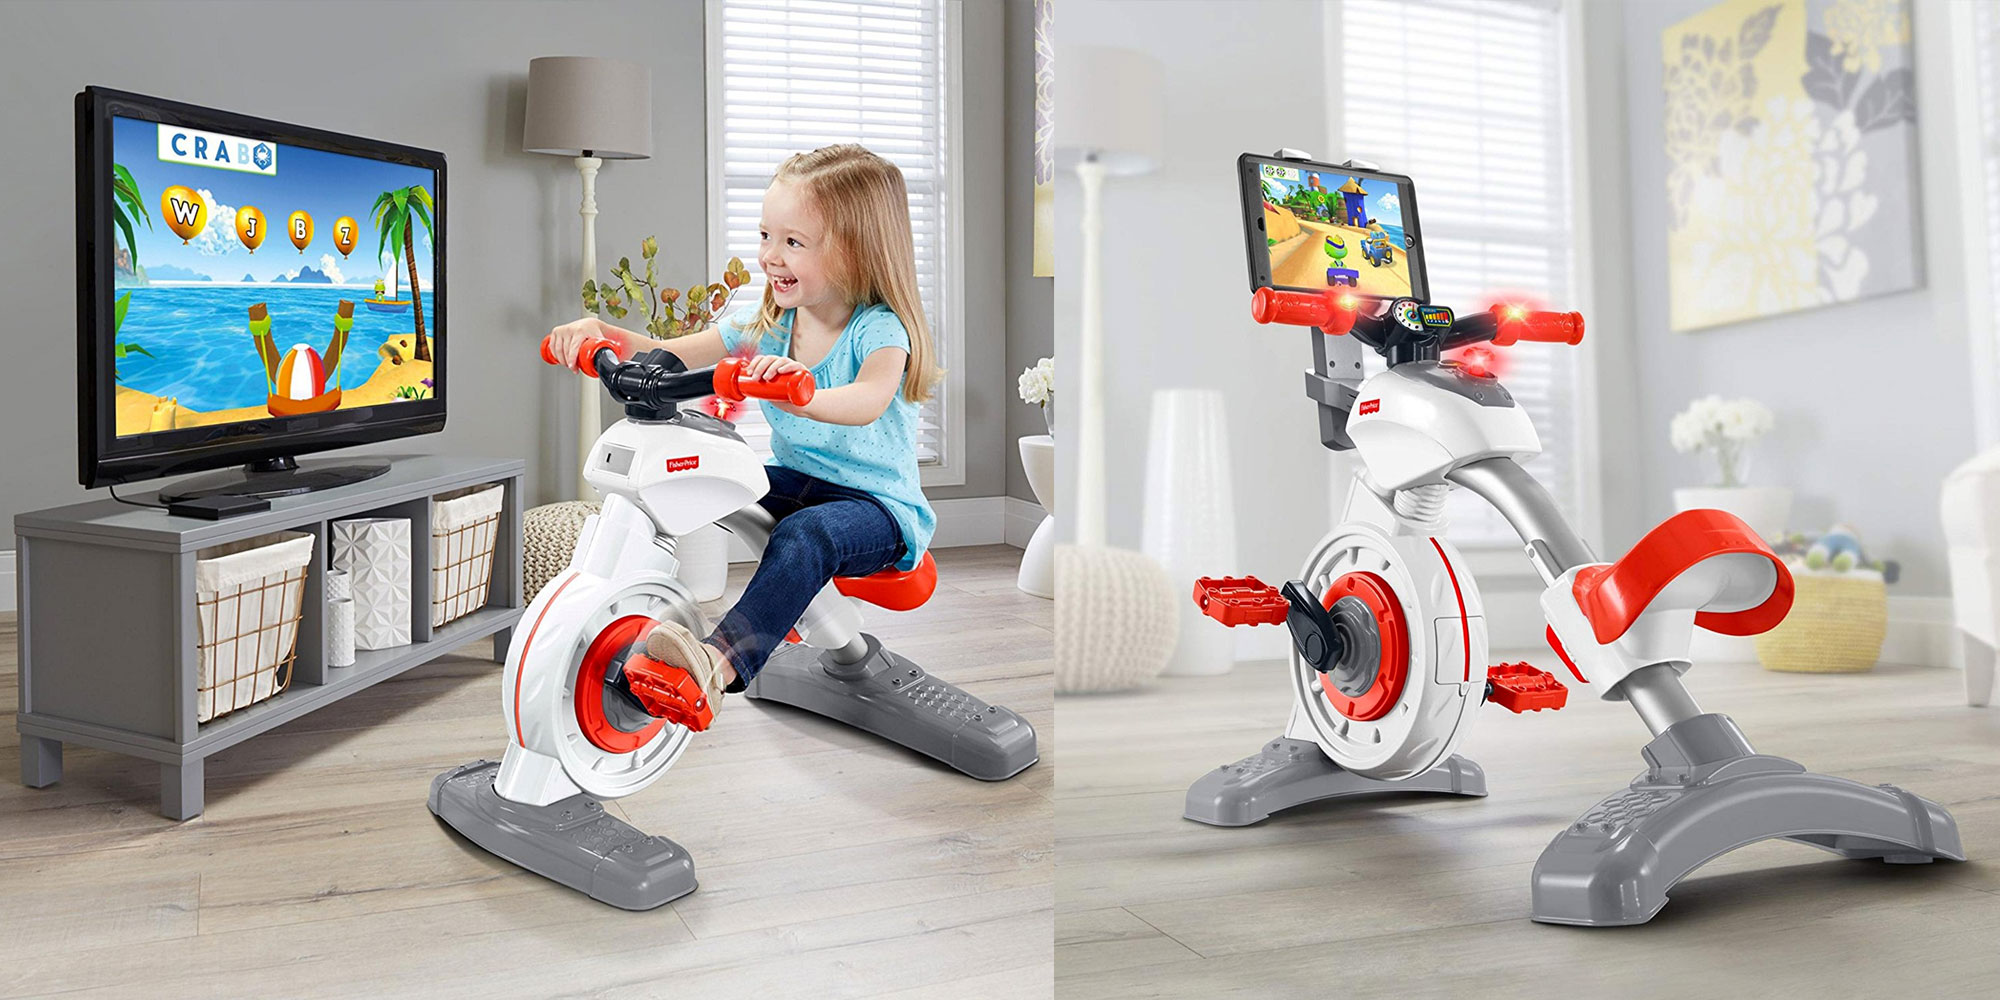 The Fisher-Price Smart Cycle is great for getting kids active: $86 (Reg. $100)